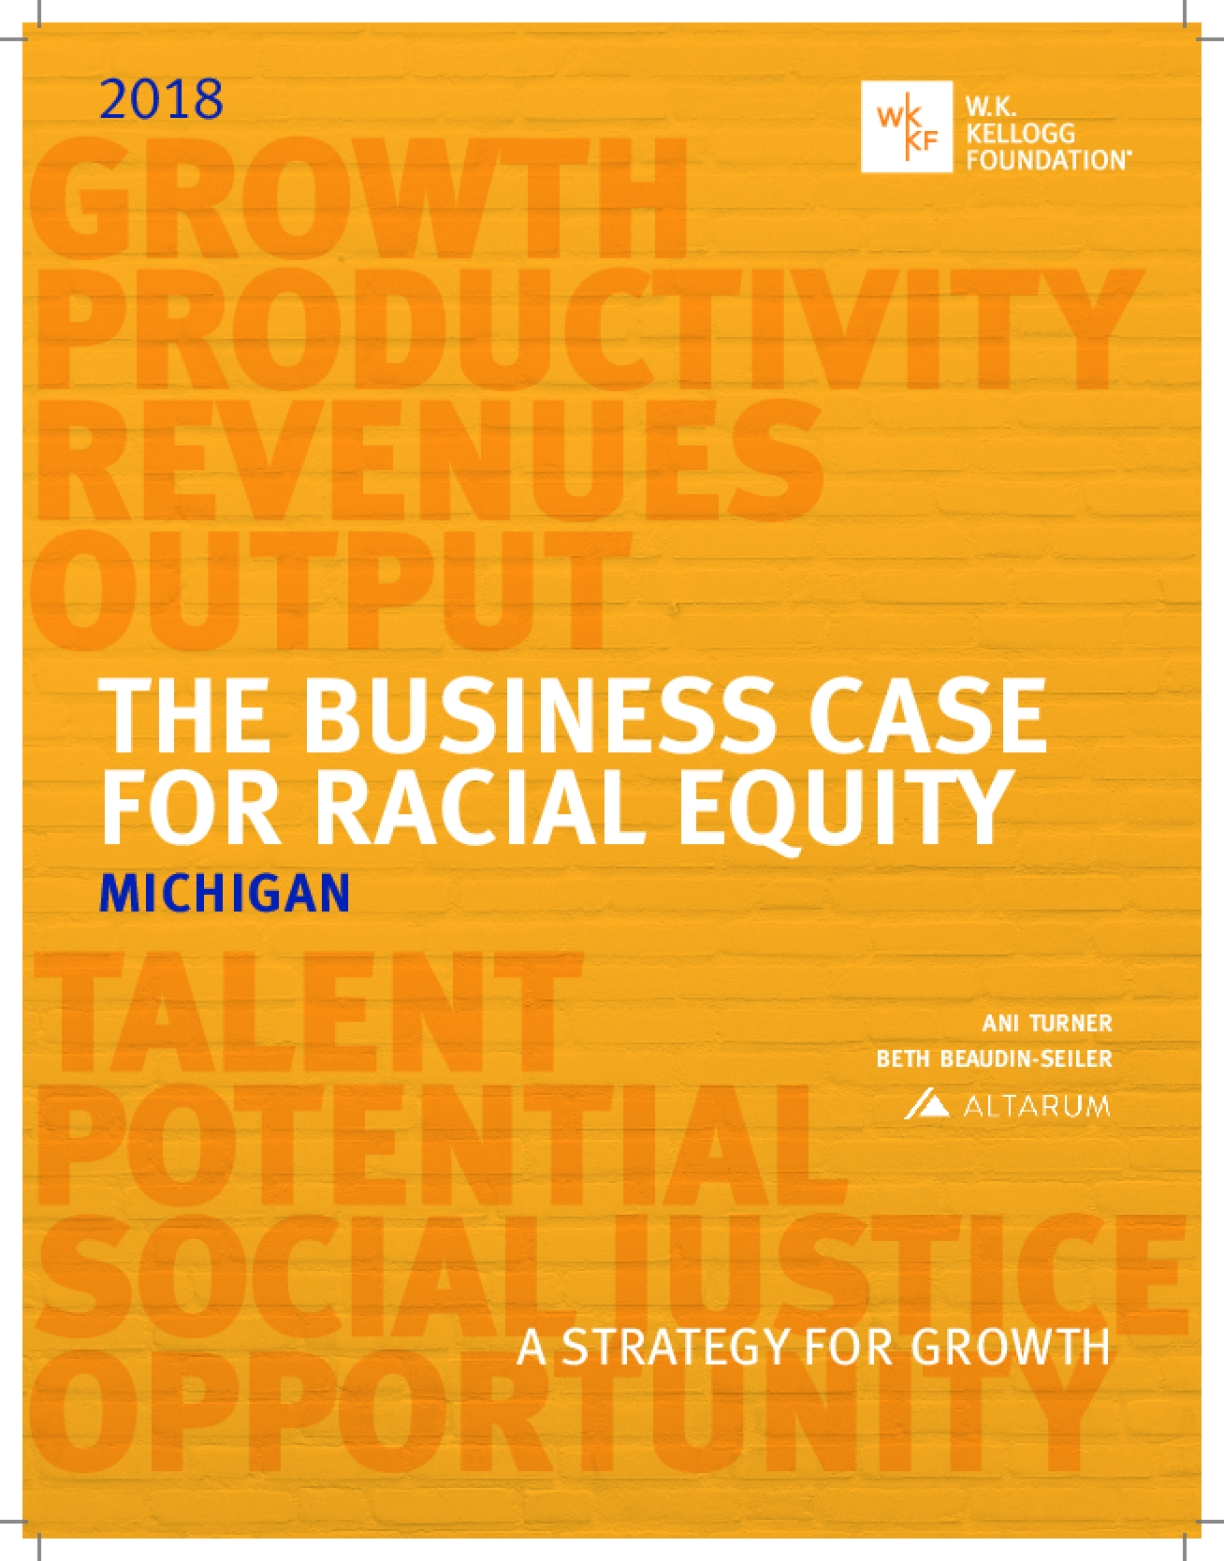 The Business Case for Racial Equity: Michigan